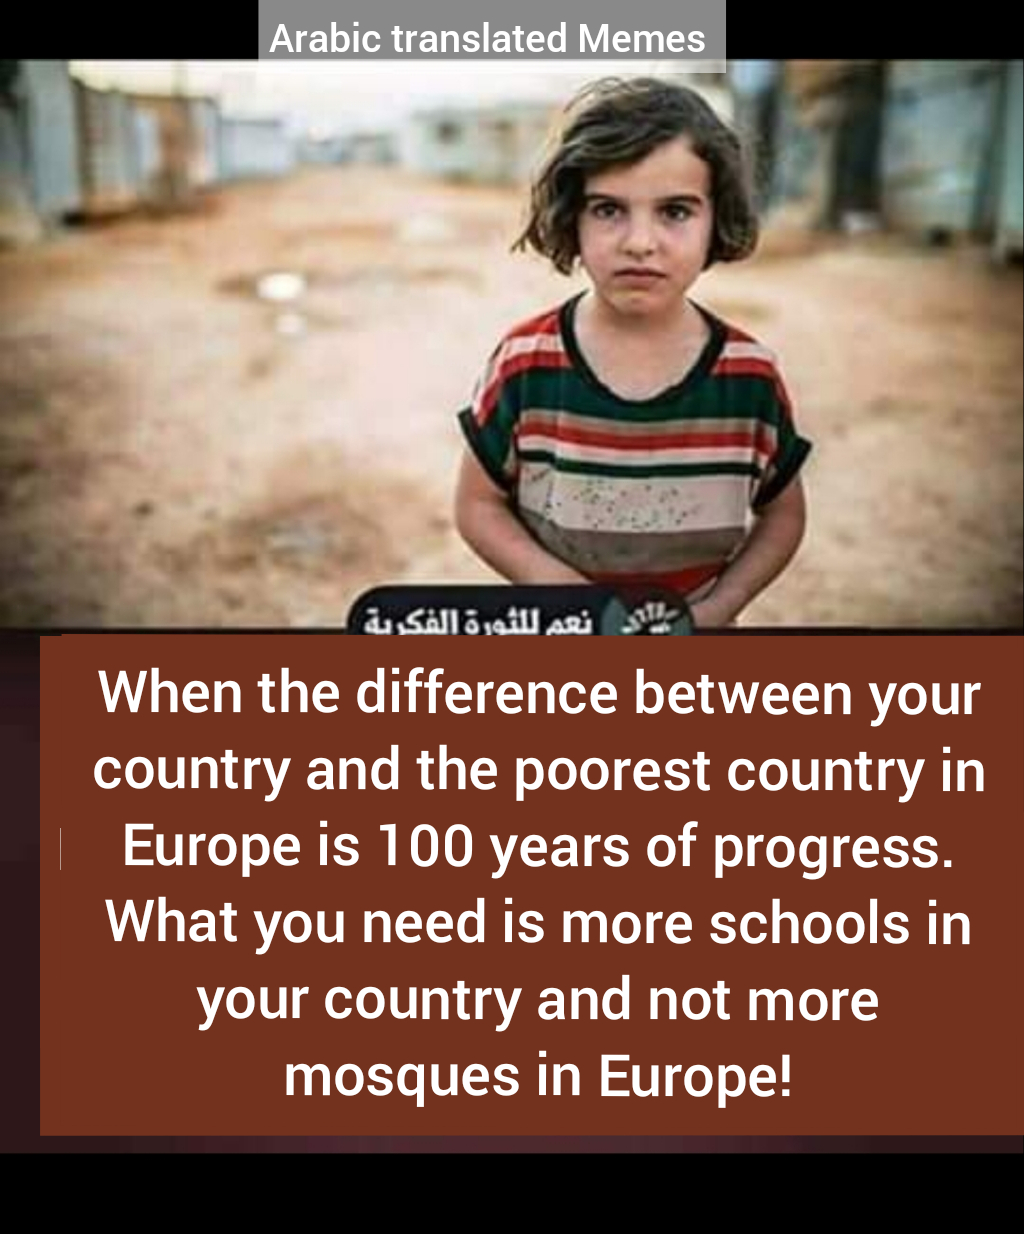 morality spending money mosques poverty Europe poor schools women education